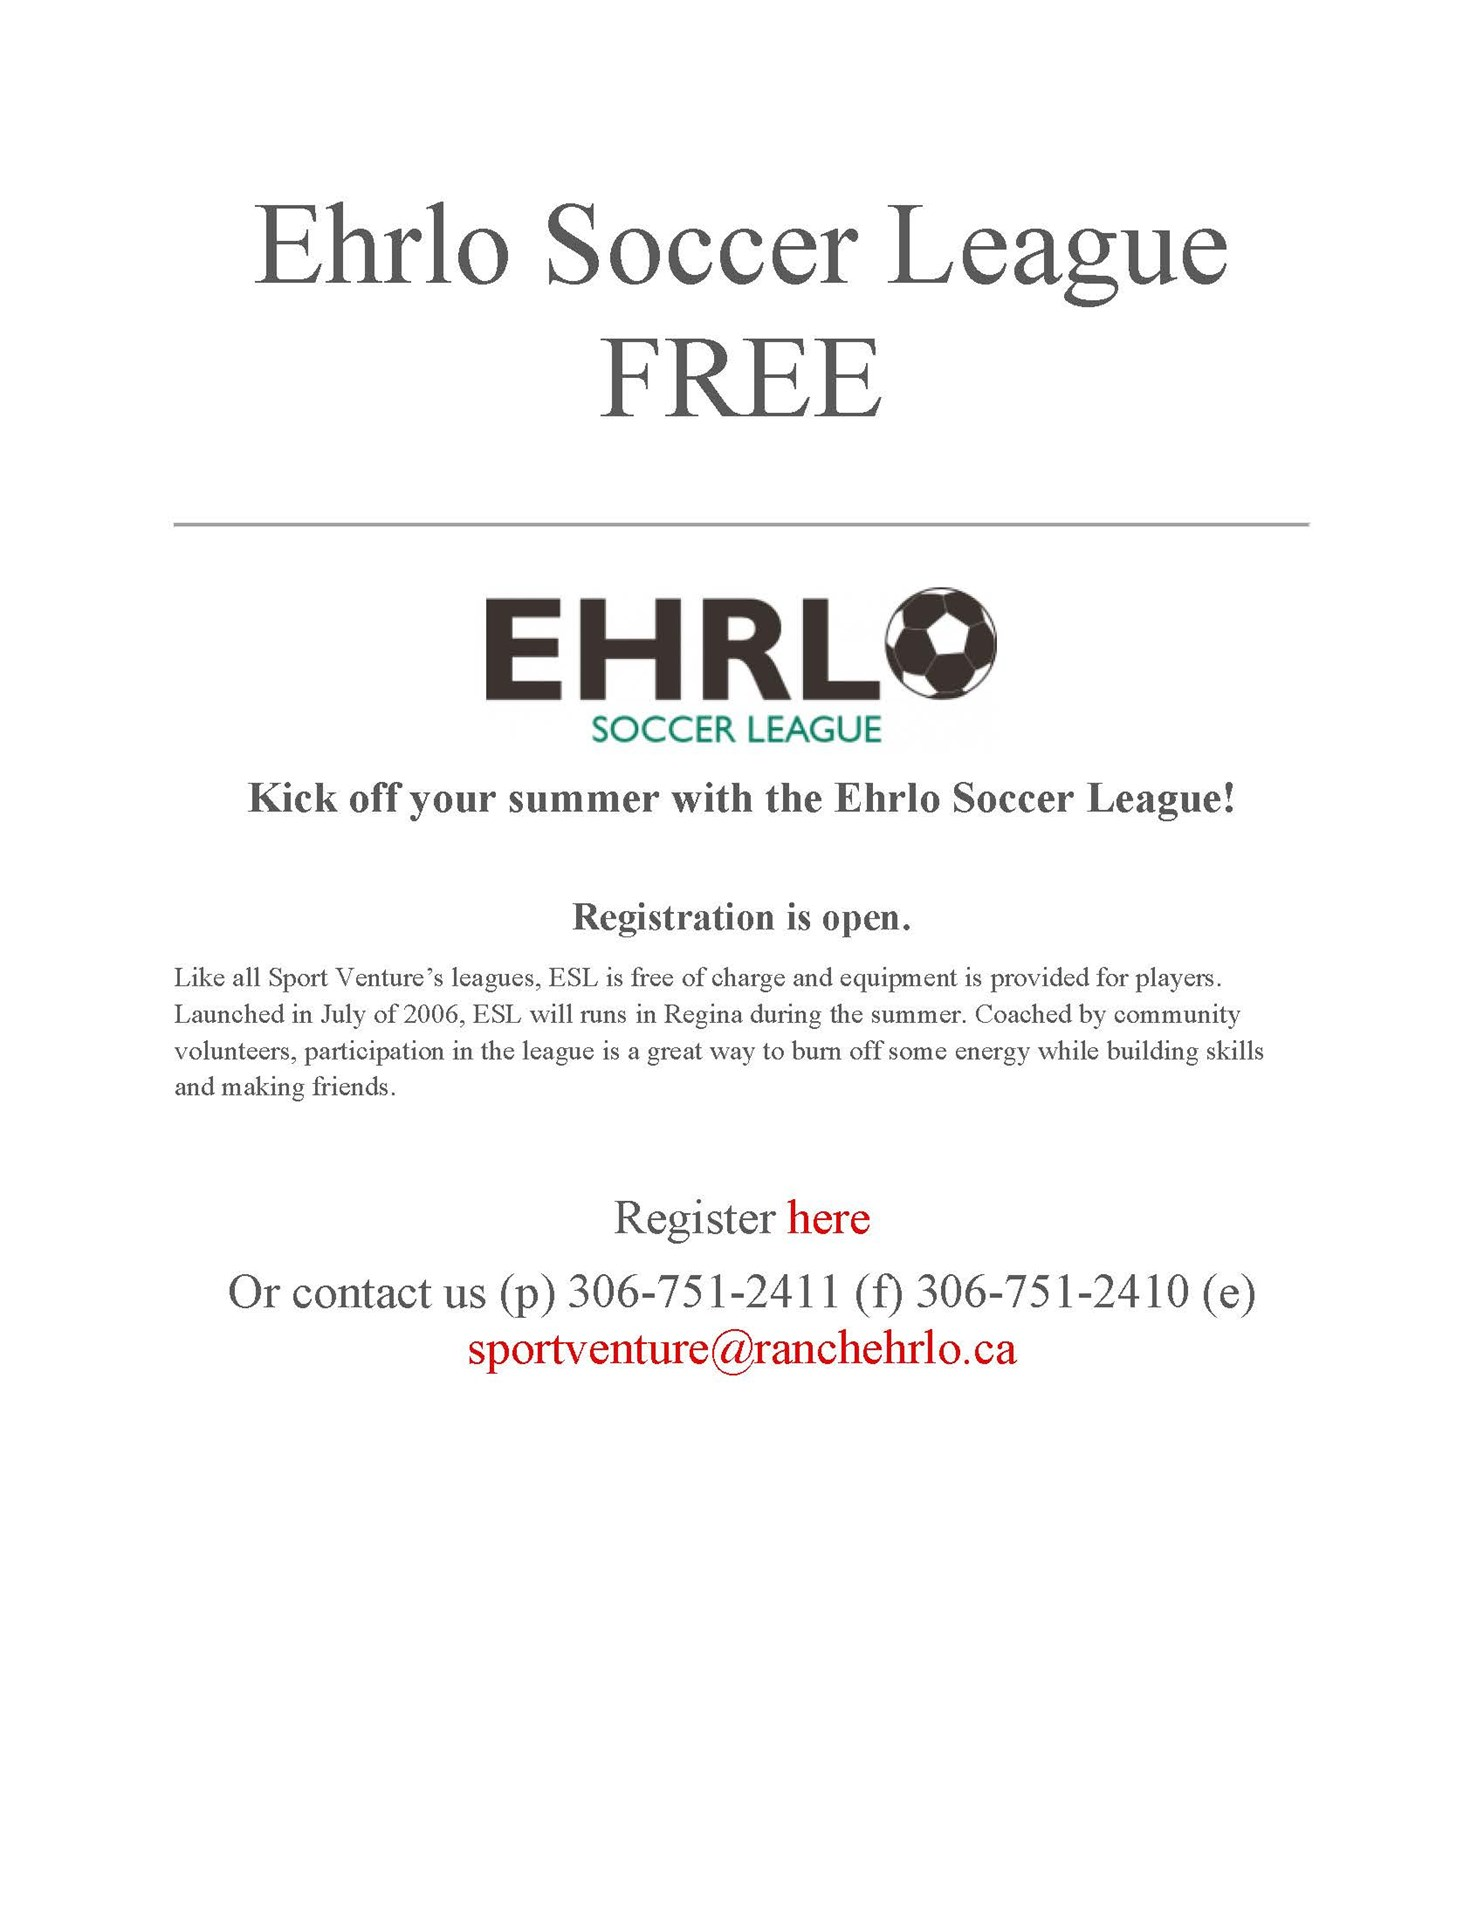 Ehrlo Soccer League FREE.jpg